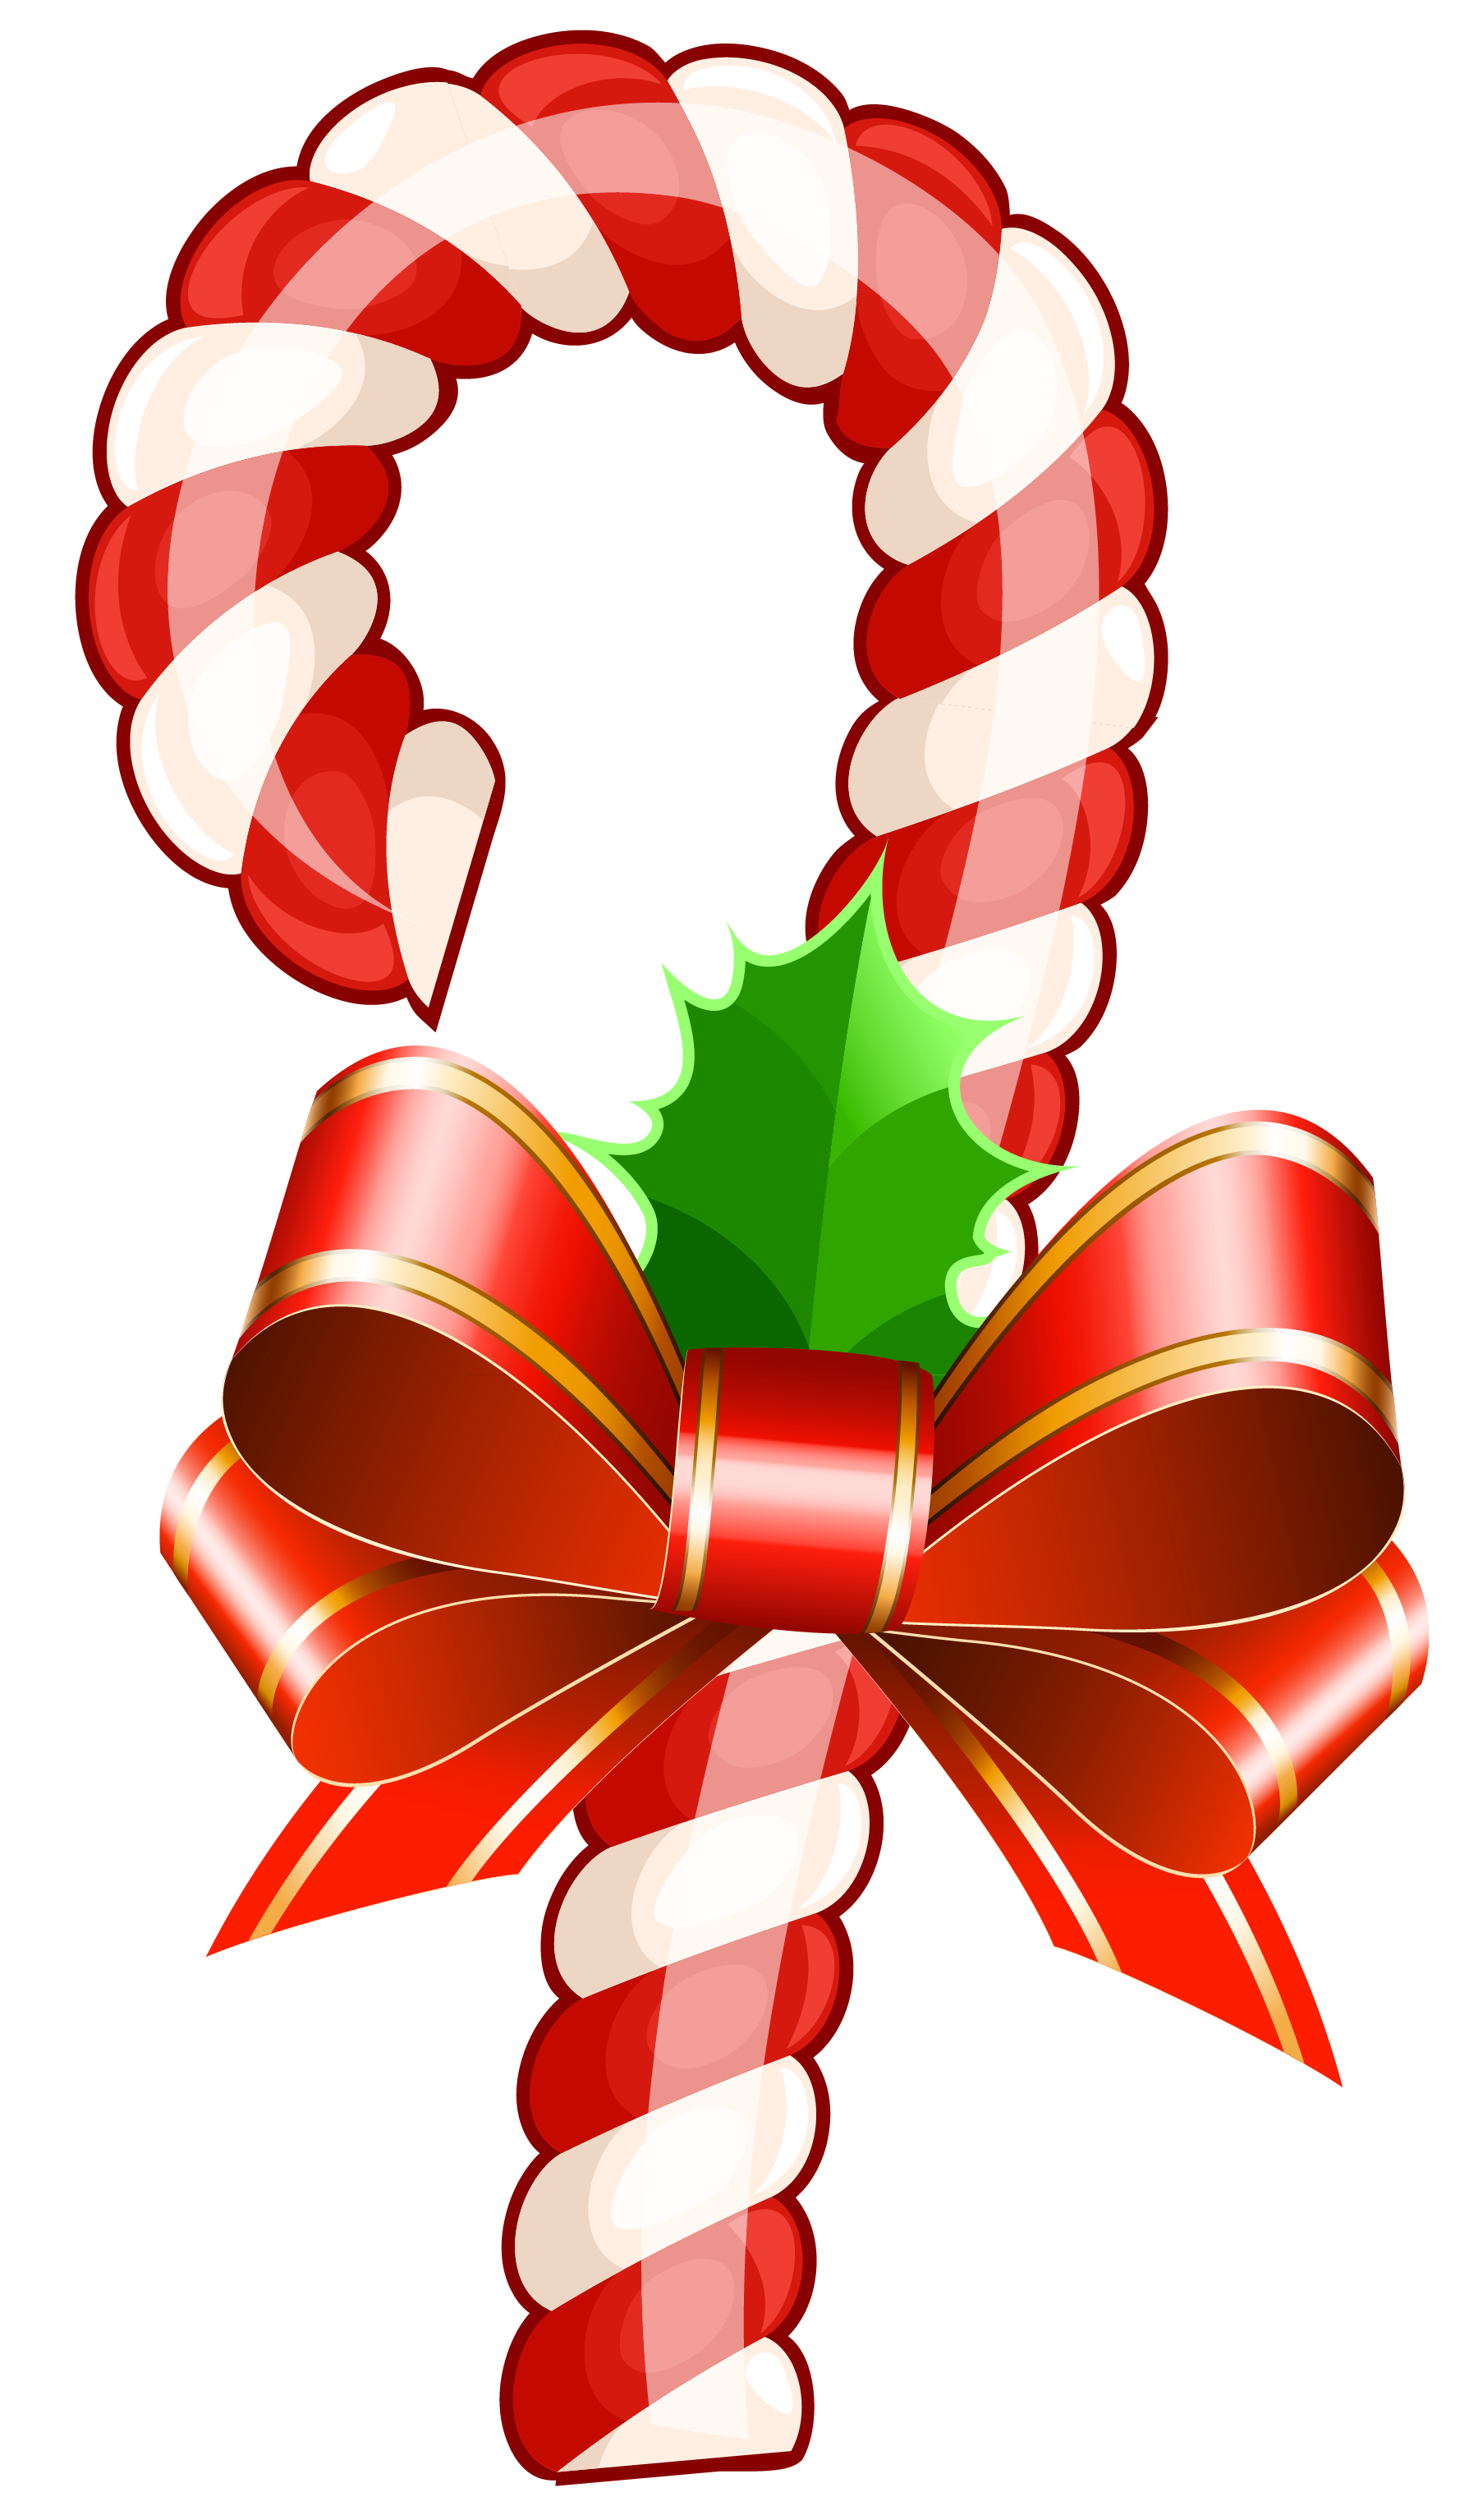 Candy Cane clipart transparent background Search  Library Search Google